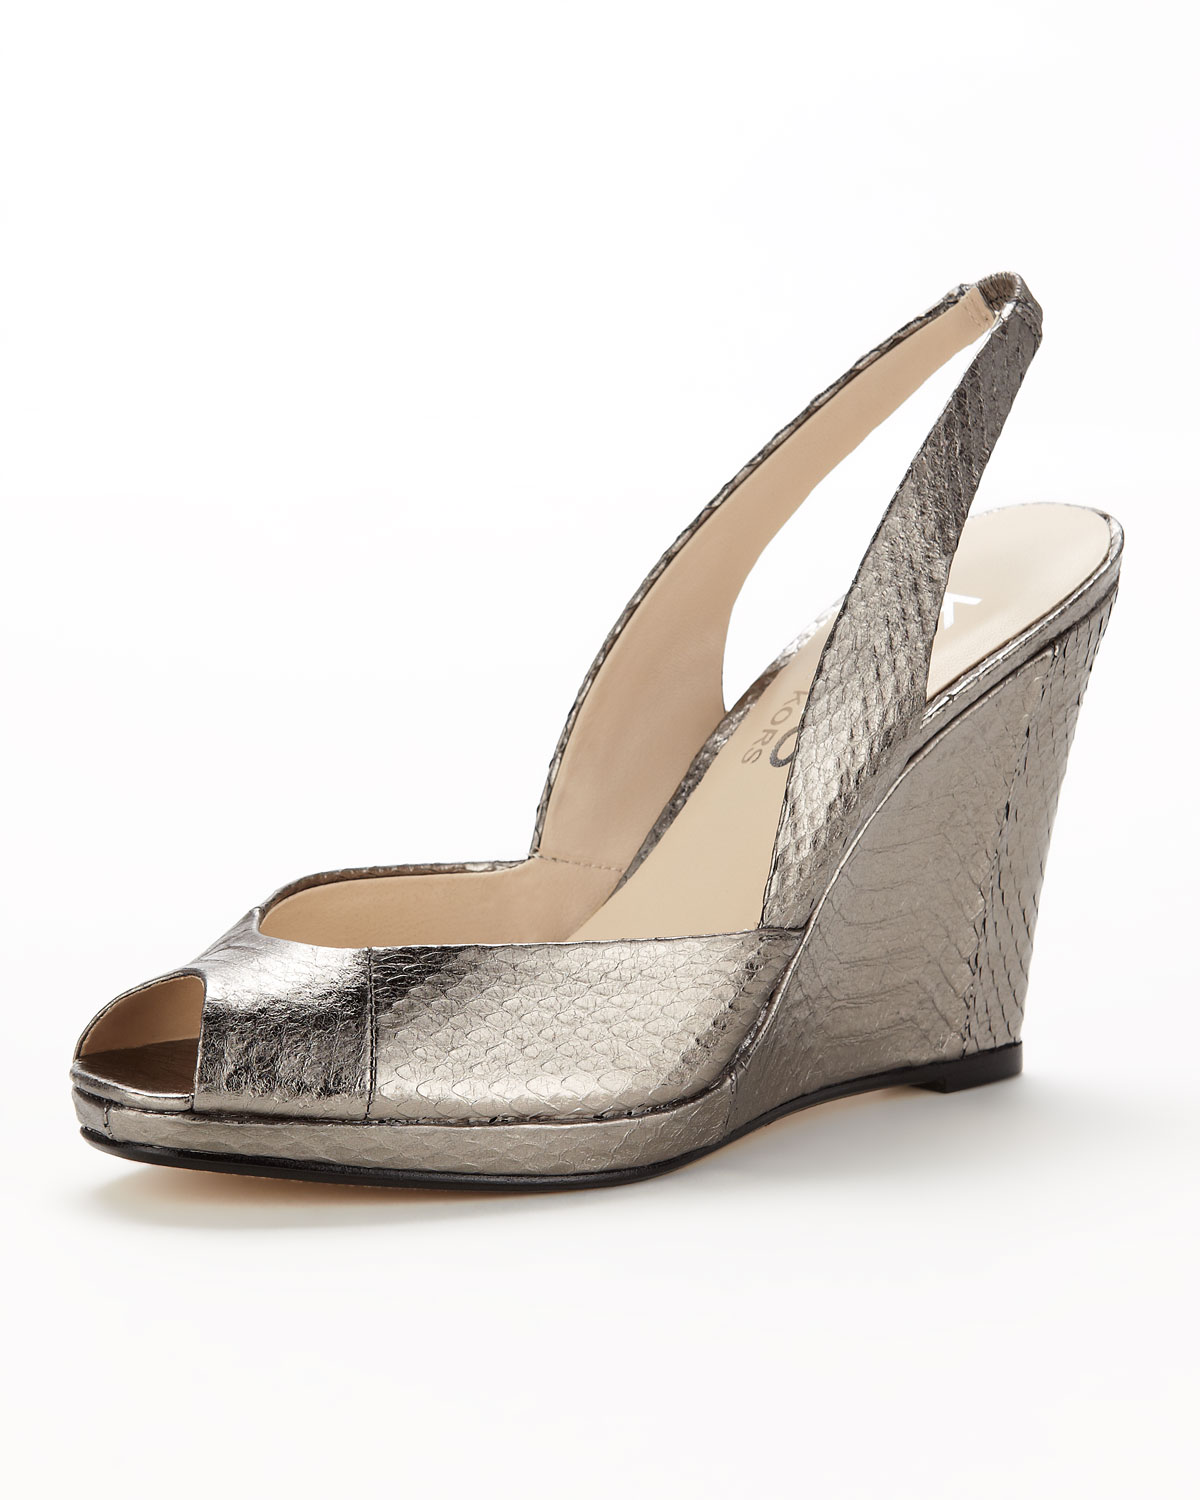 Kors By Michael Kors Vivian Metallic Snakeskin Wedge Sandal Lyst